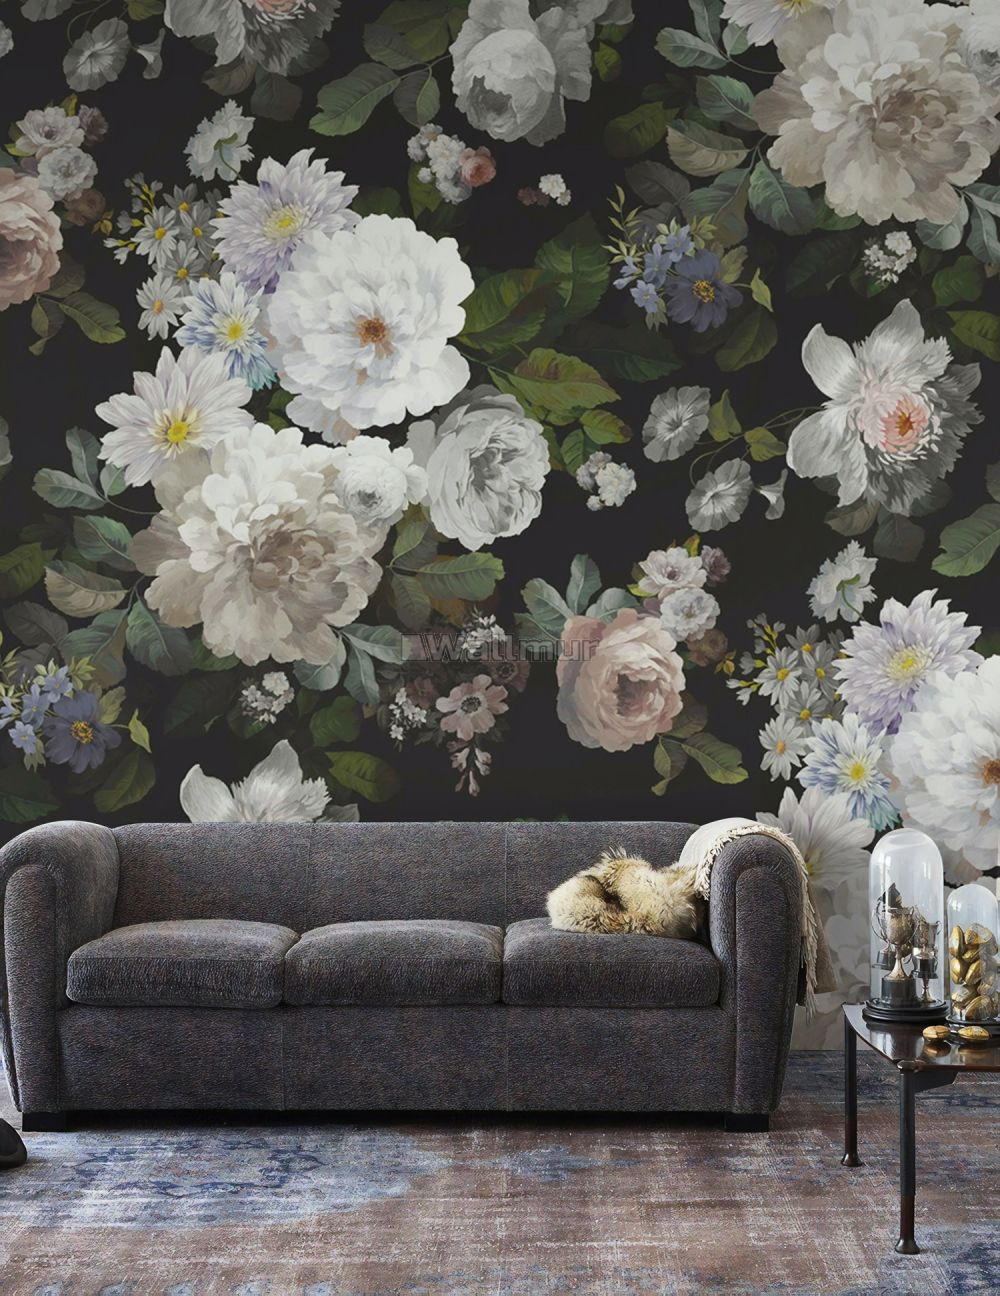 Dark Floral And White Peony Blossoms Wallpaper Mural Wallmur